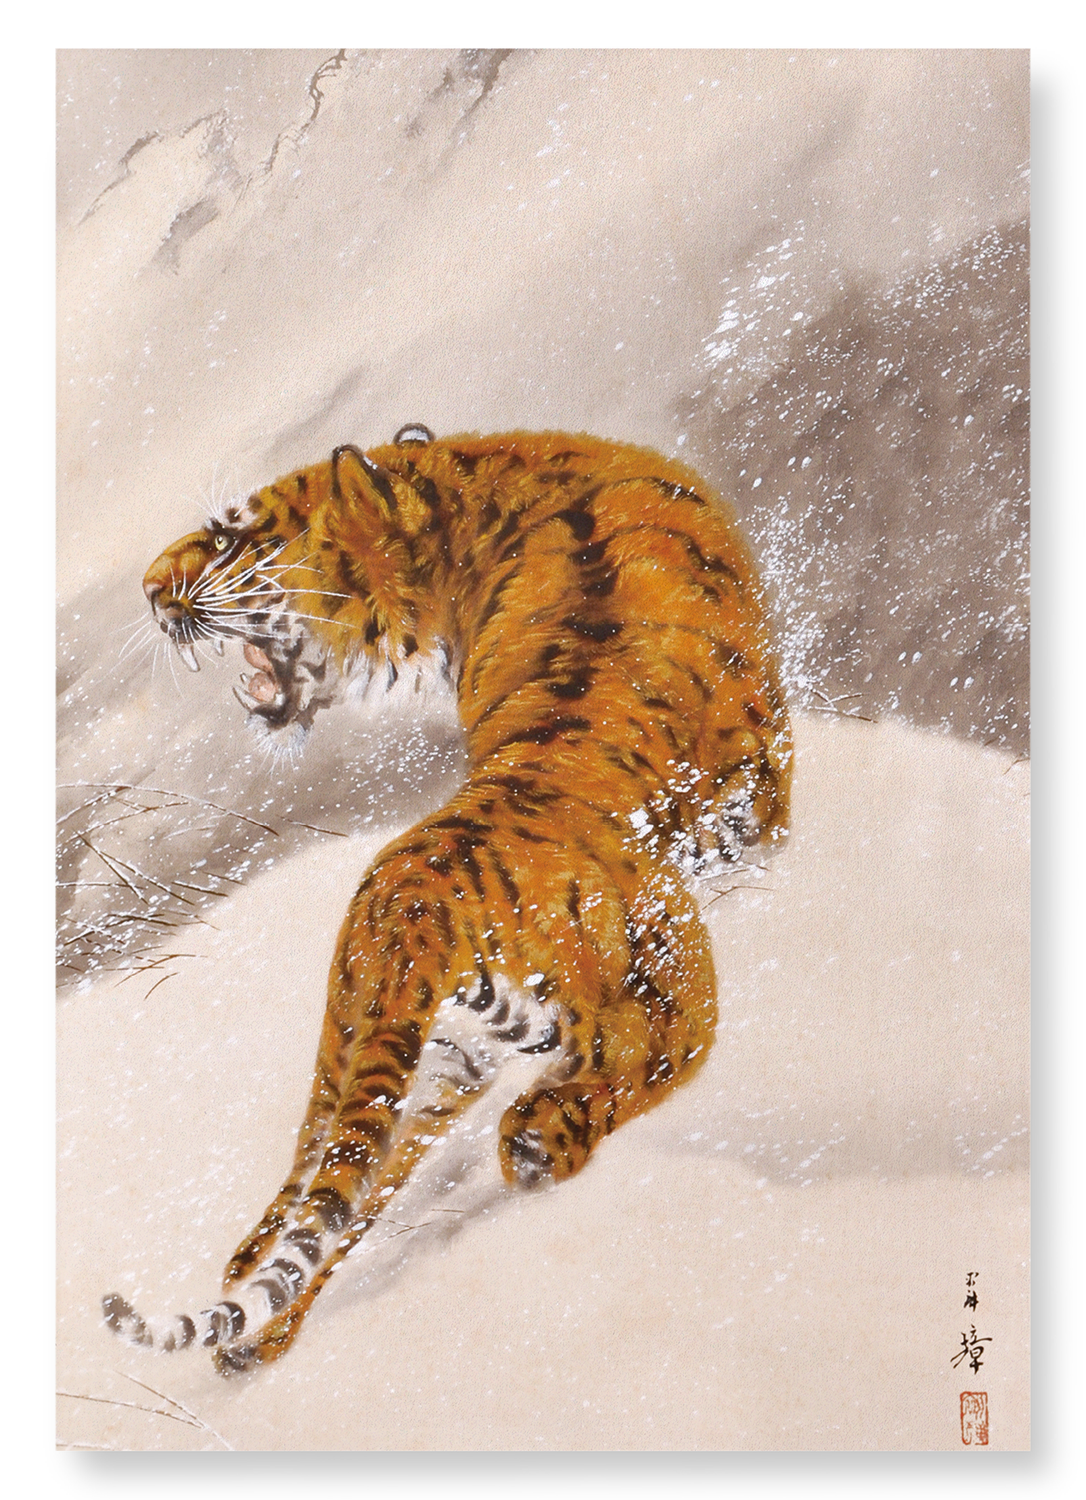 TIGER IN SNOW: 2xPrints